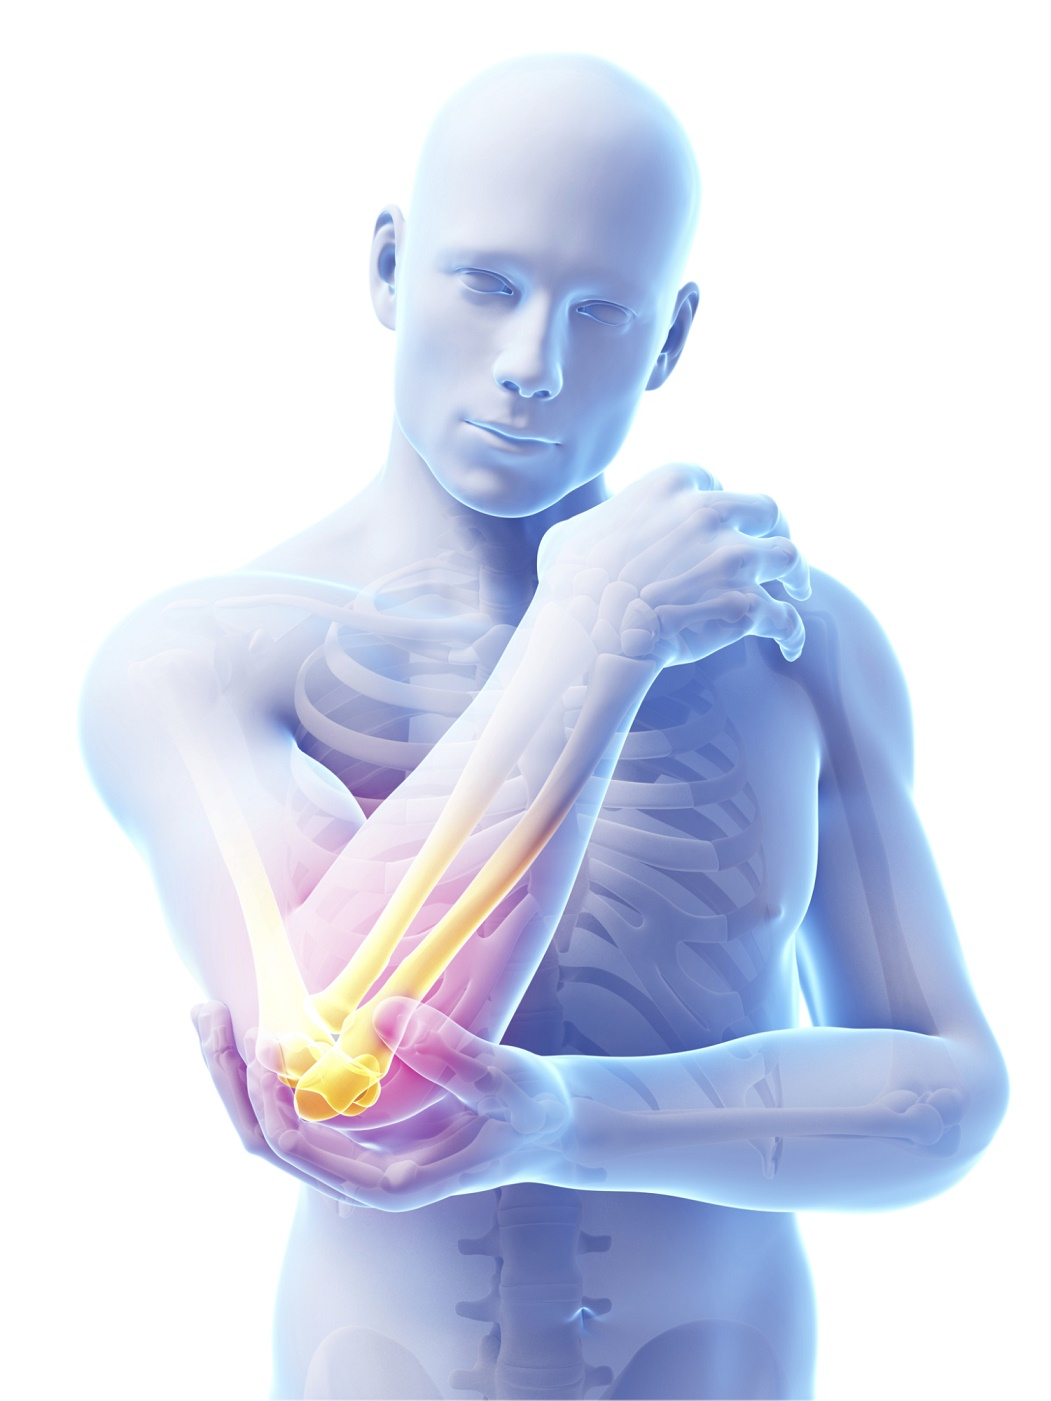 inflamed-elbow-joint